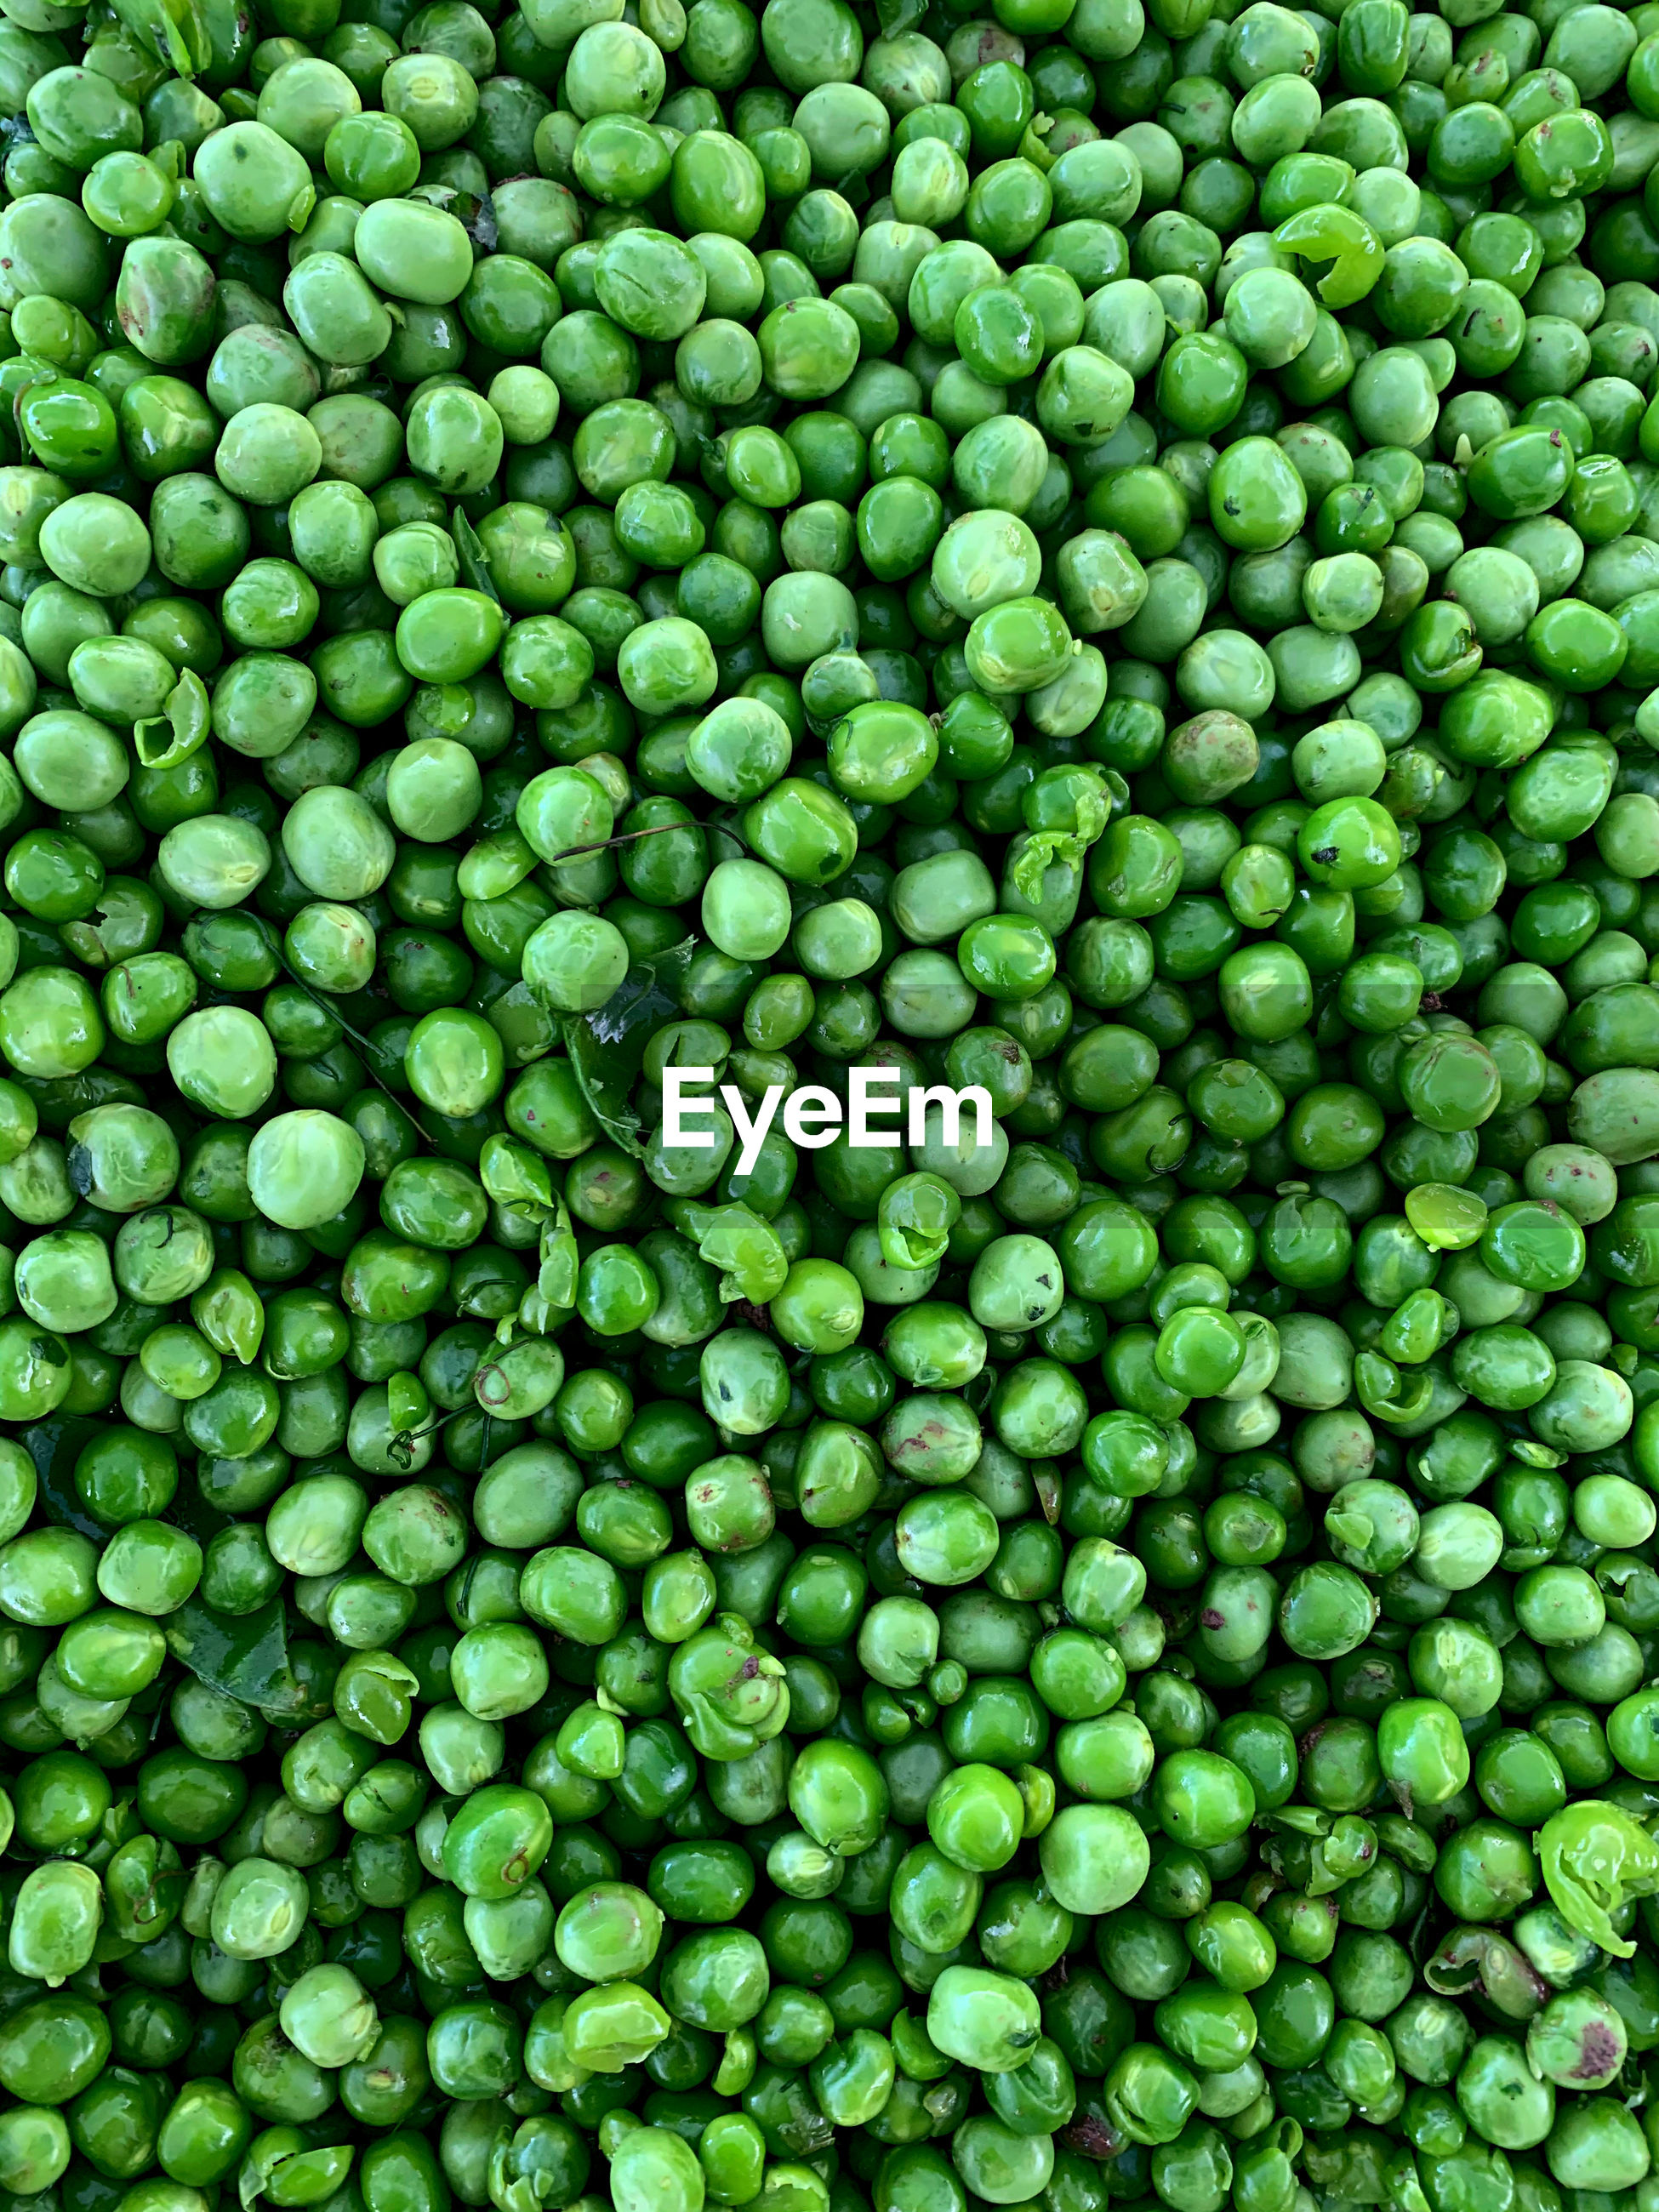 FULL FRAME SHOT OF GREEN EGGS IN CONTAINER